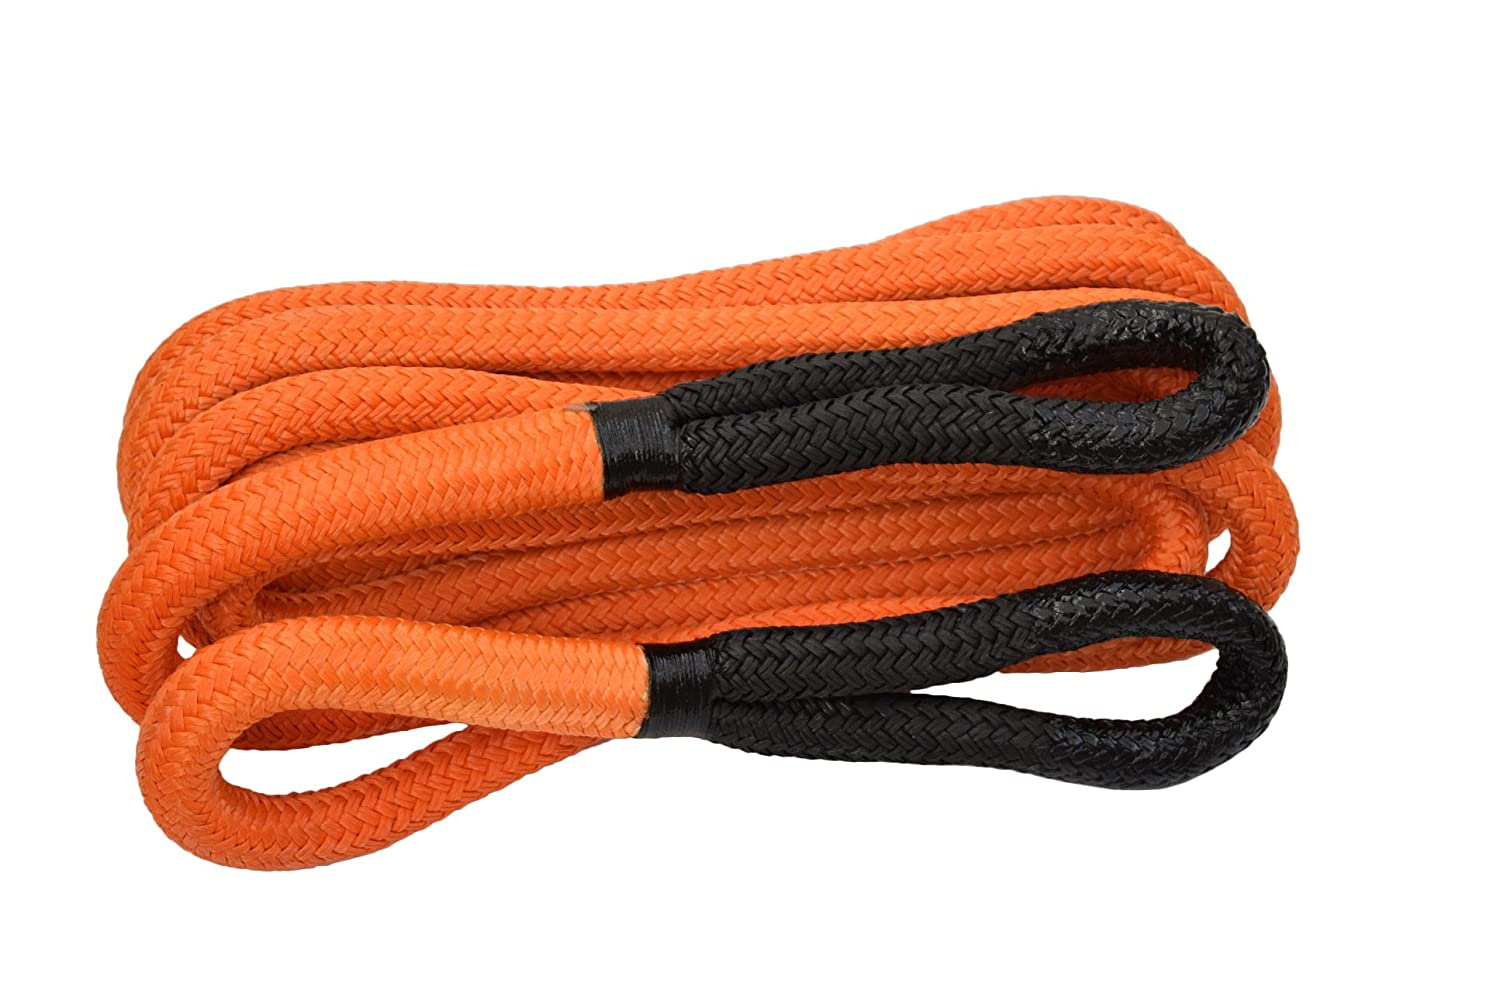 1/×20ft, Orange 1 Dia Kinetic Energy Rope,Recovery Rope,Kinetic Rope Heavy Duty Vehicle Tow Strap Rope for Truck ATV UTV SUV